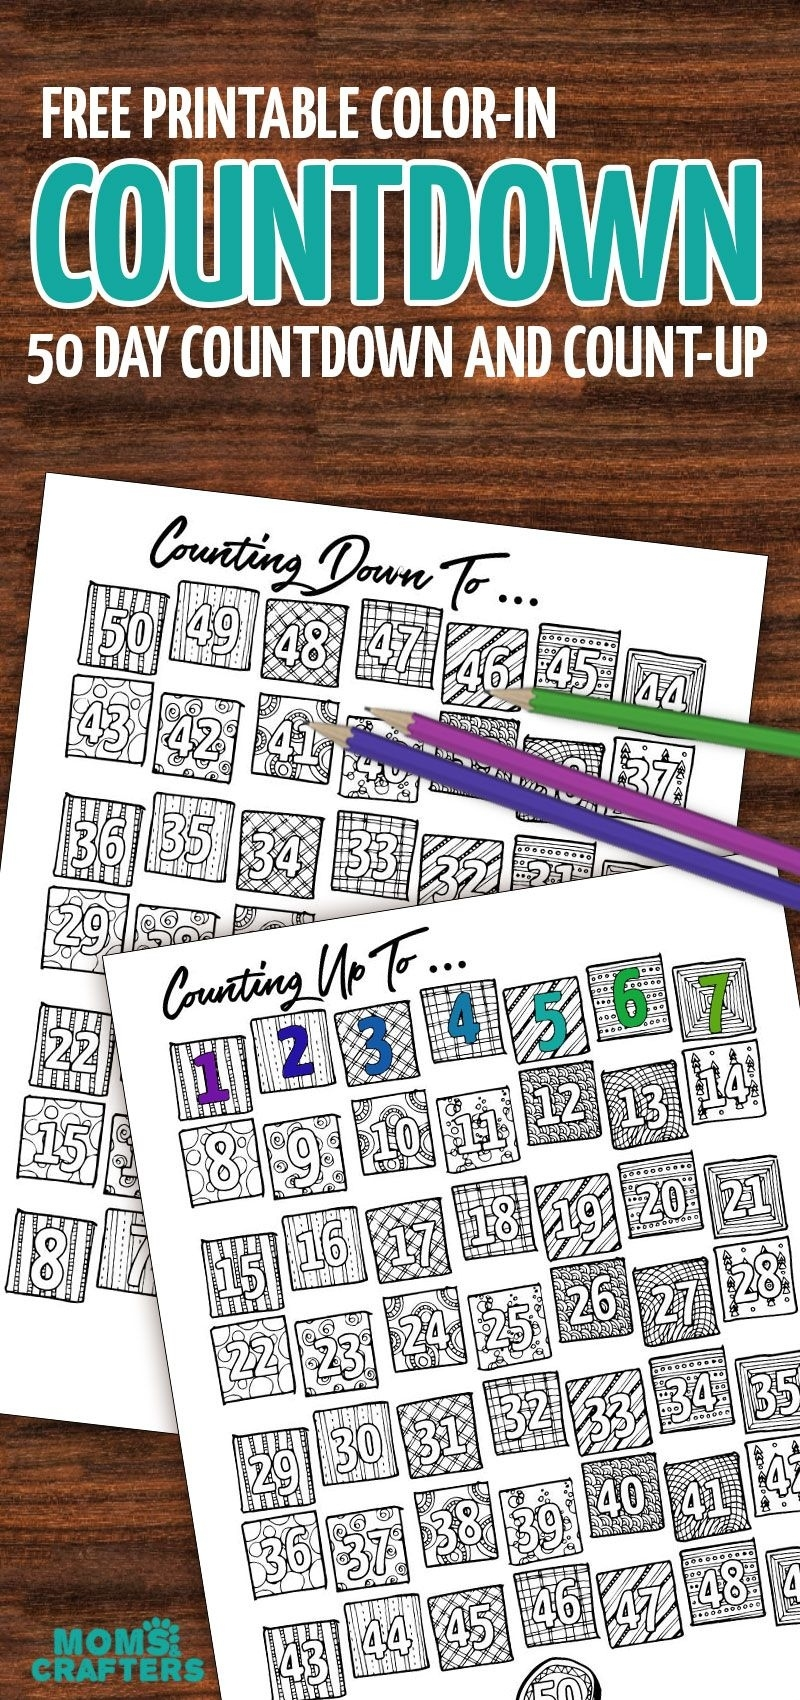 Grab This Fun Color-In Countdown And Progress Tracker Exceptional Free Countdown Birthday Calendar Printable